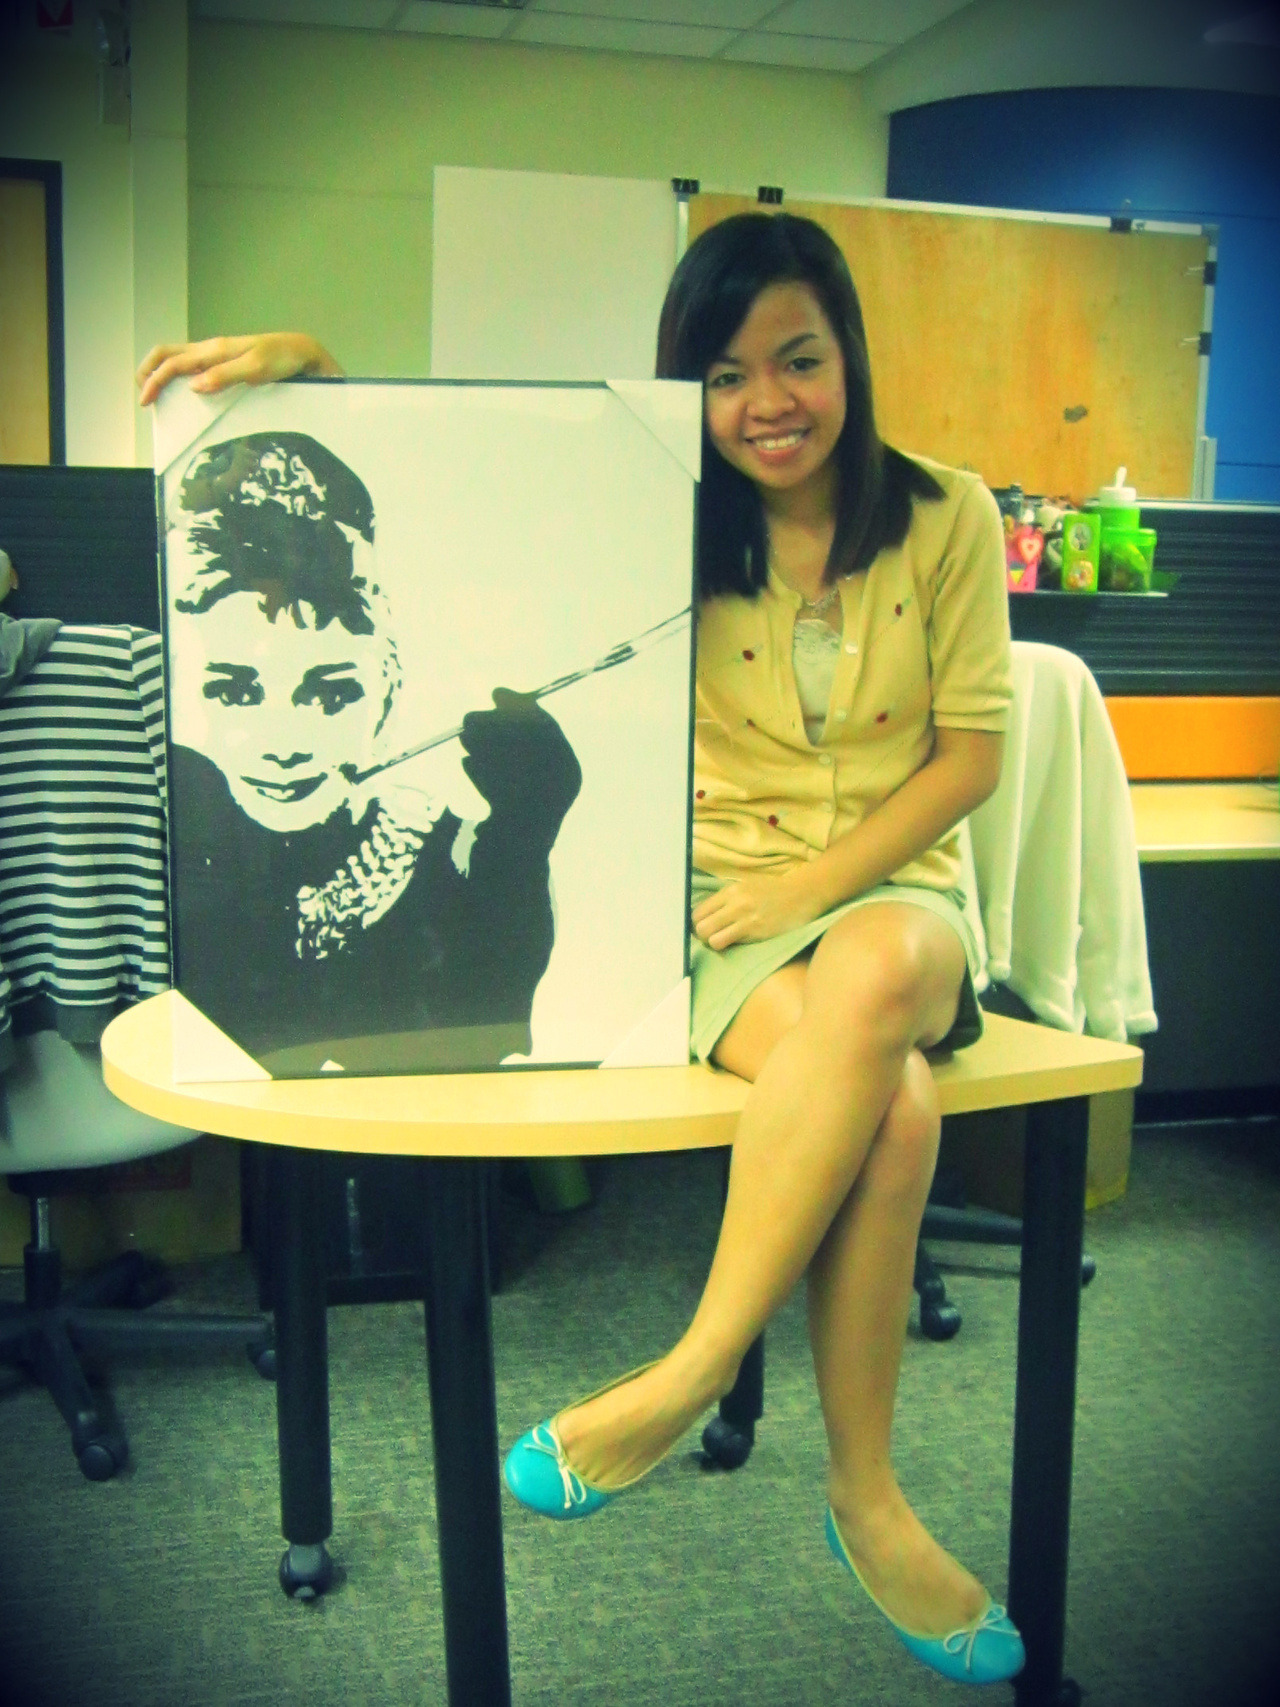 My teammates gave me this lovely portrait of Audrey Hepburn as a parting gift (since I will be  transferring to another team next month). I was about to buy the very same portrait for my humble home office but for some reason, hindi matuloy tuloy. Kaya pala. :)